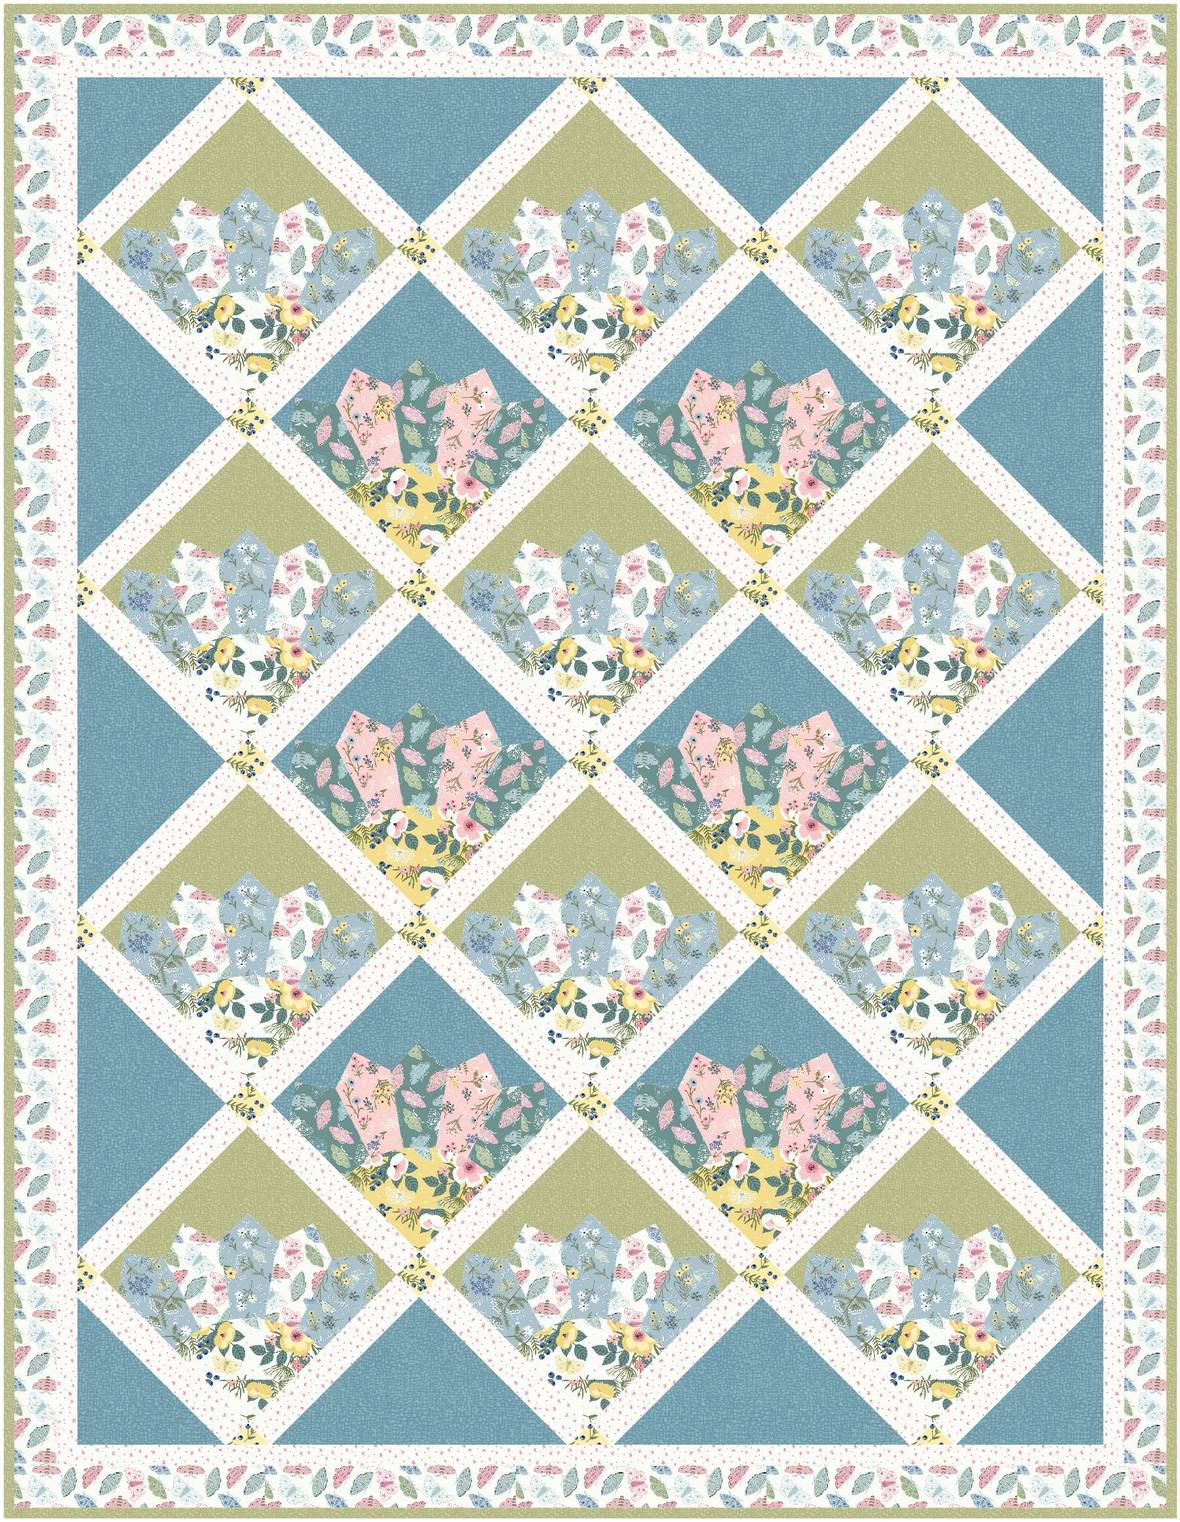 Wildflowers 55x71 by Natalie Crabtree Free Quilt Pattern